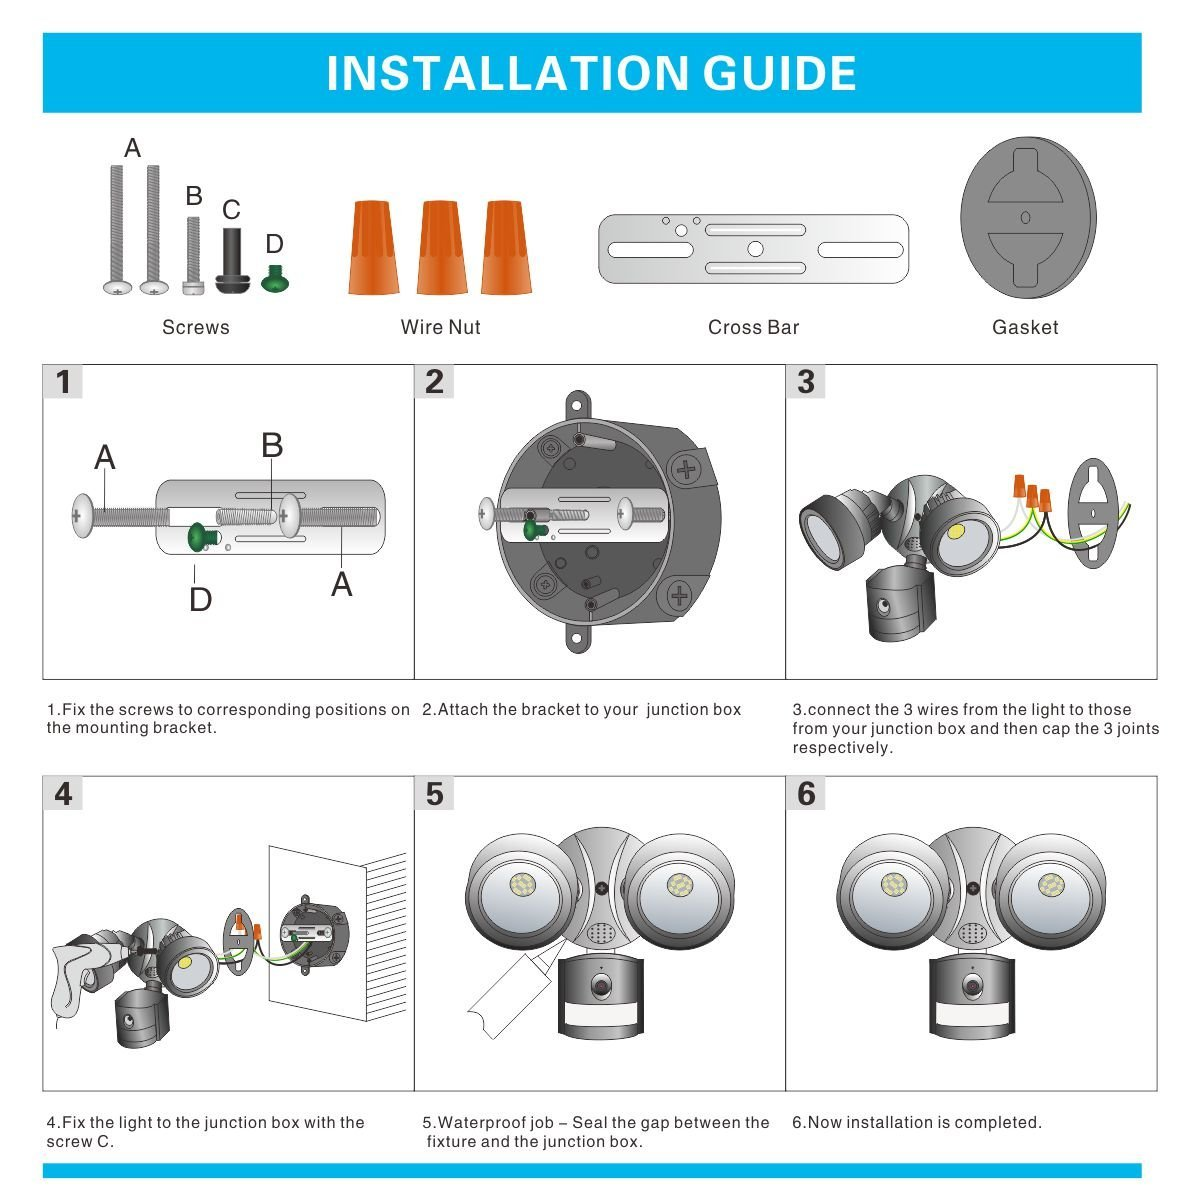 Led Solar Motion Sensor Flood Light Activated Outdoor Junction Box Wiring Diagram For Fixture Security With 2 Adjustable Heads